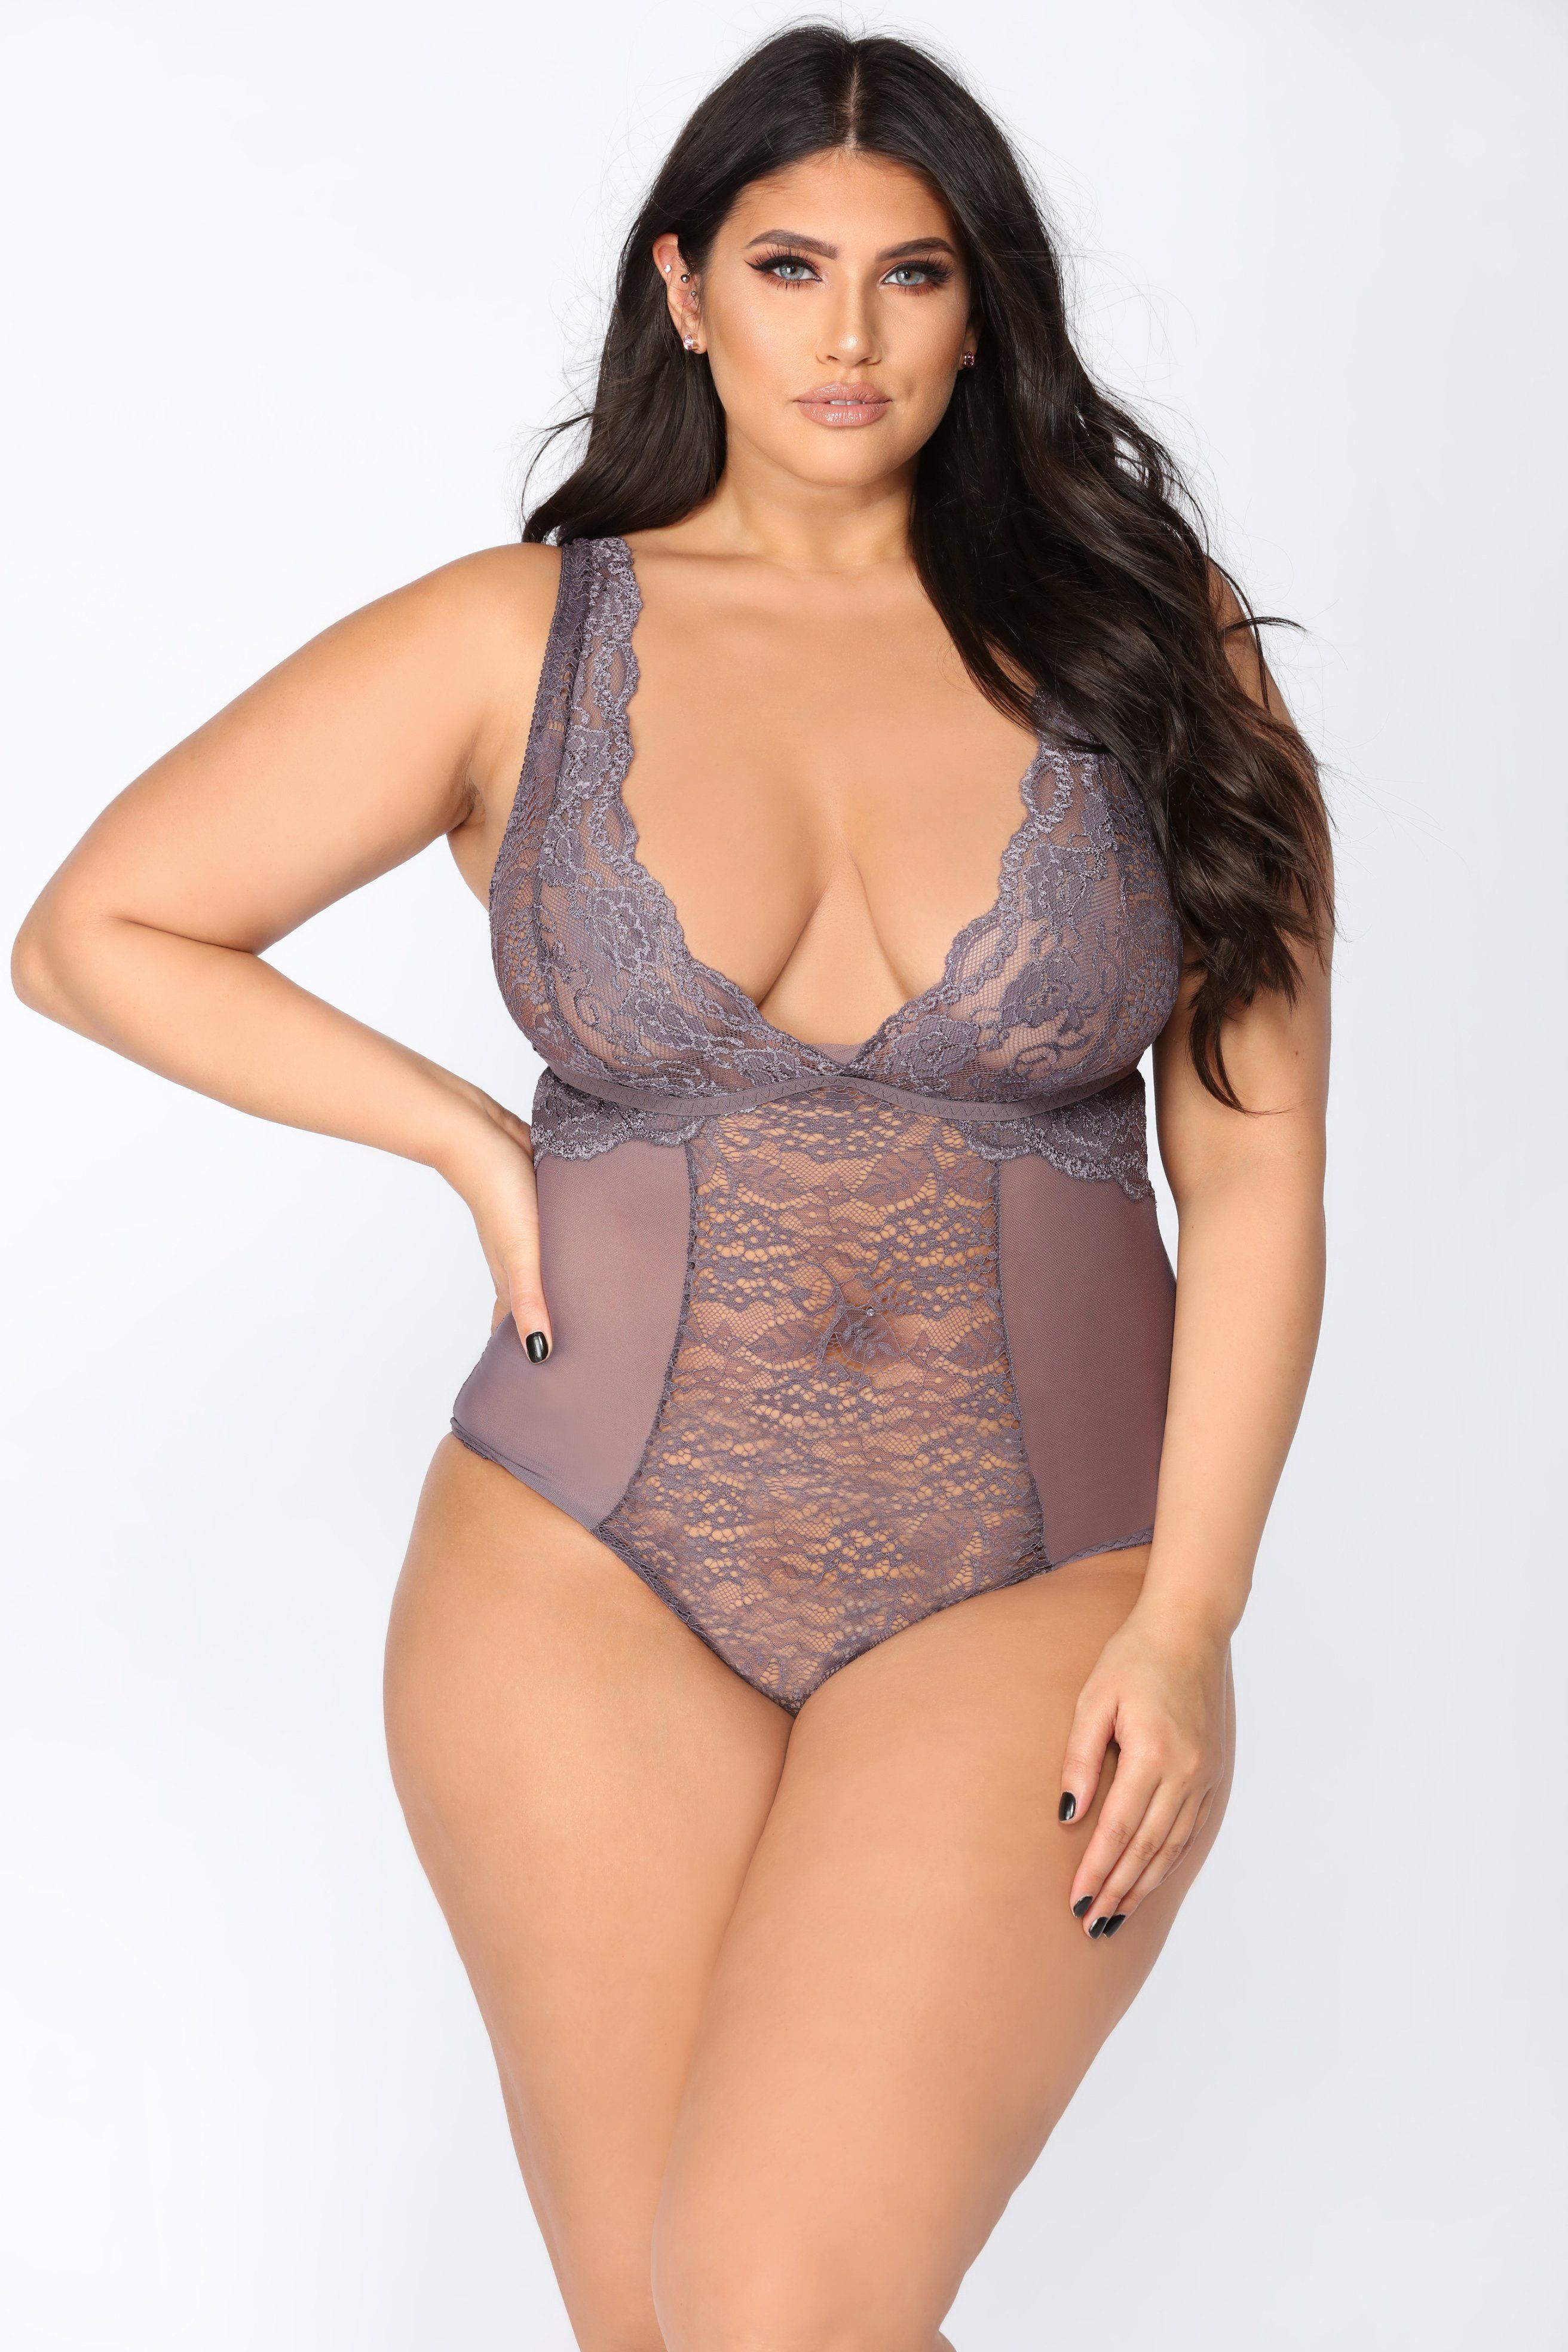 3e09158b2f4 Available In Blush And Grey Lace Teddy Mesh Side Insert 1 Piece Snap  Closure 96% Nylon 4% Spandex All Lingerie FINAL SALE